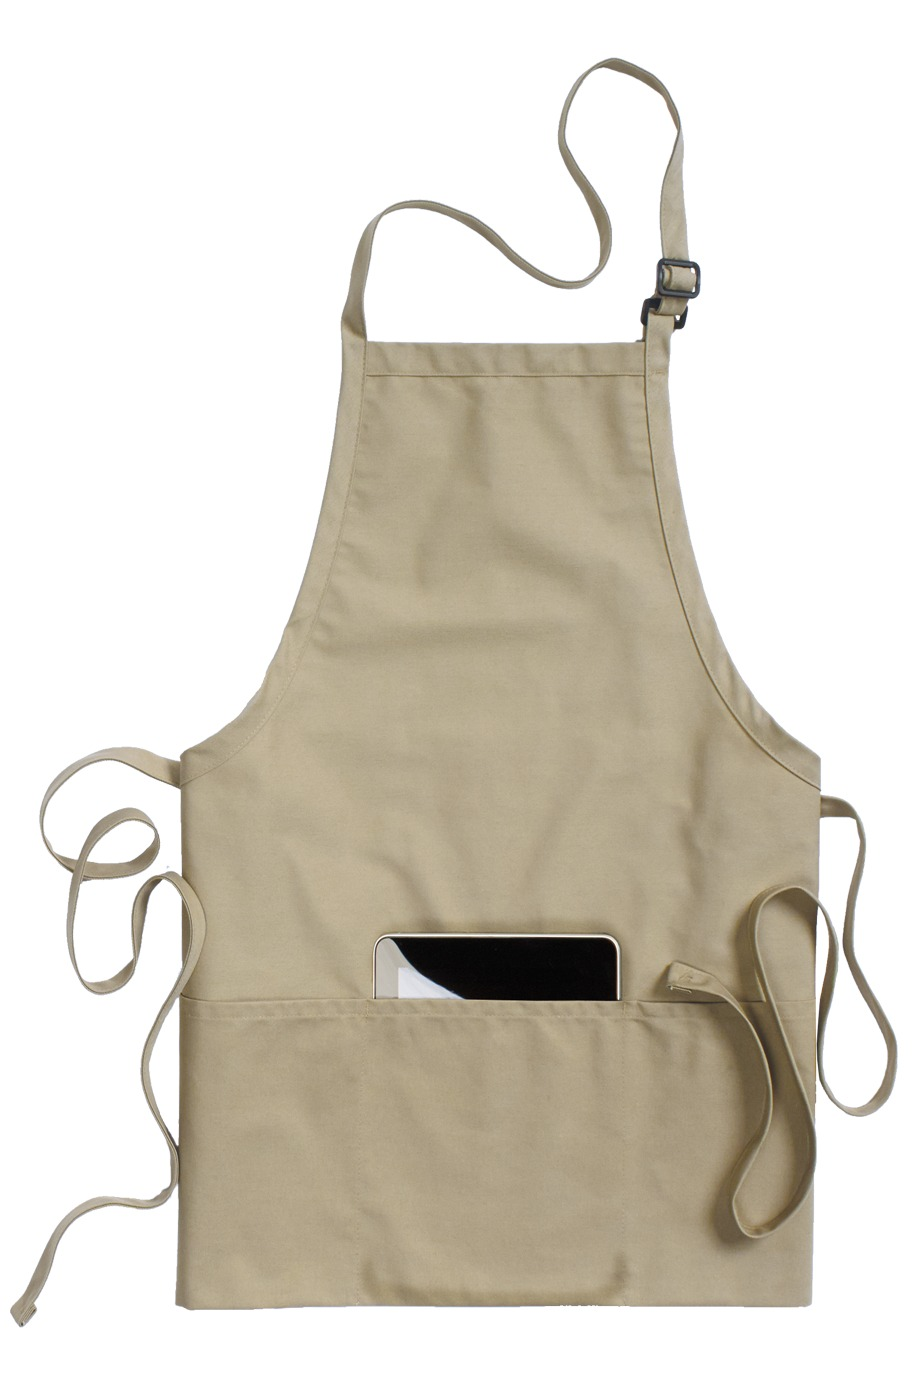 Edwards Garment 9002 - Bib Apron With Pockets